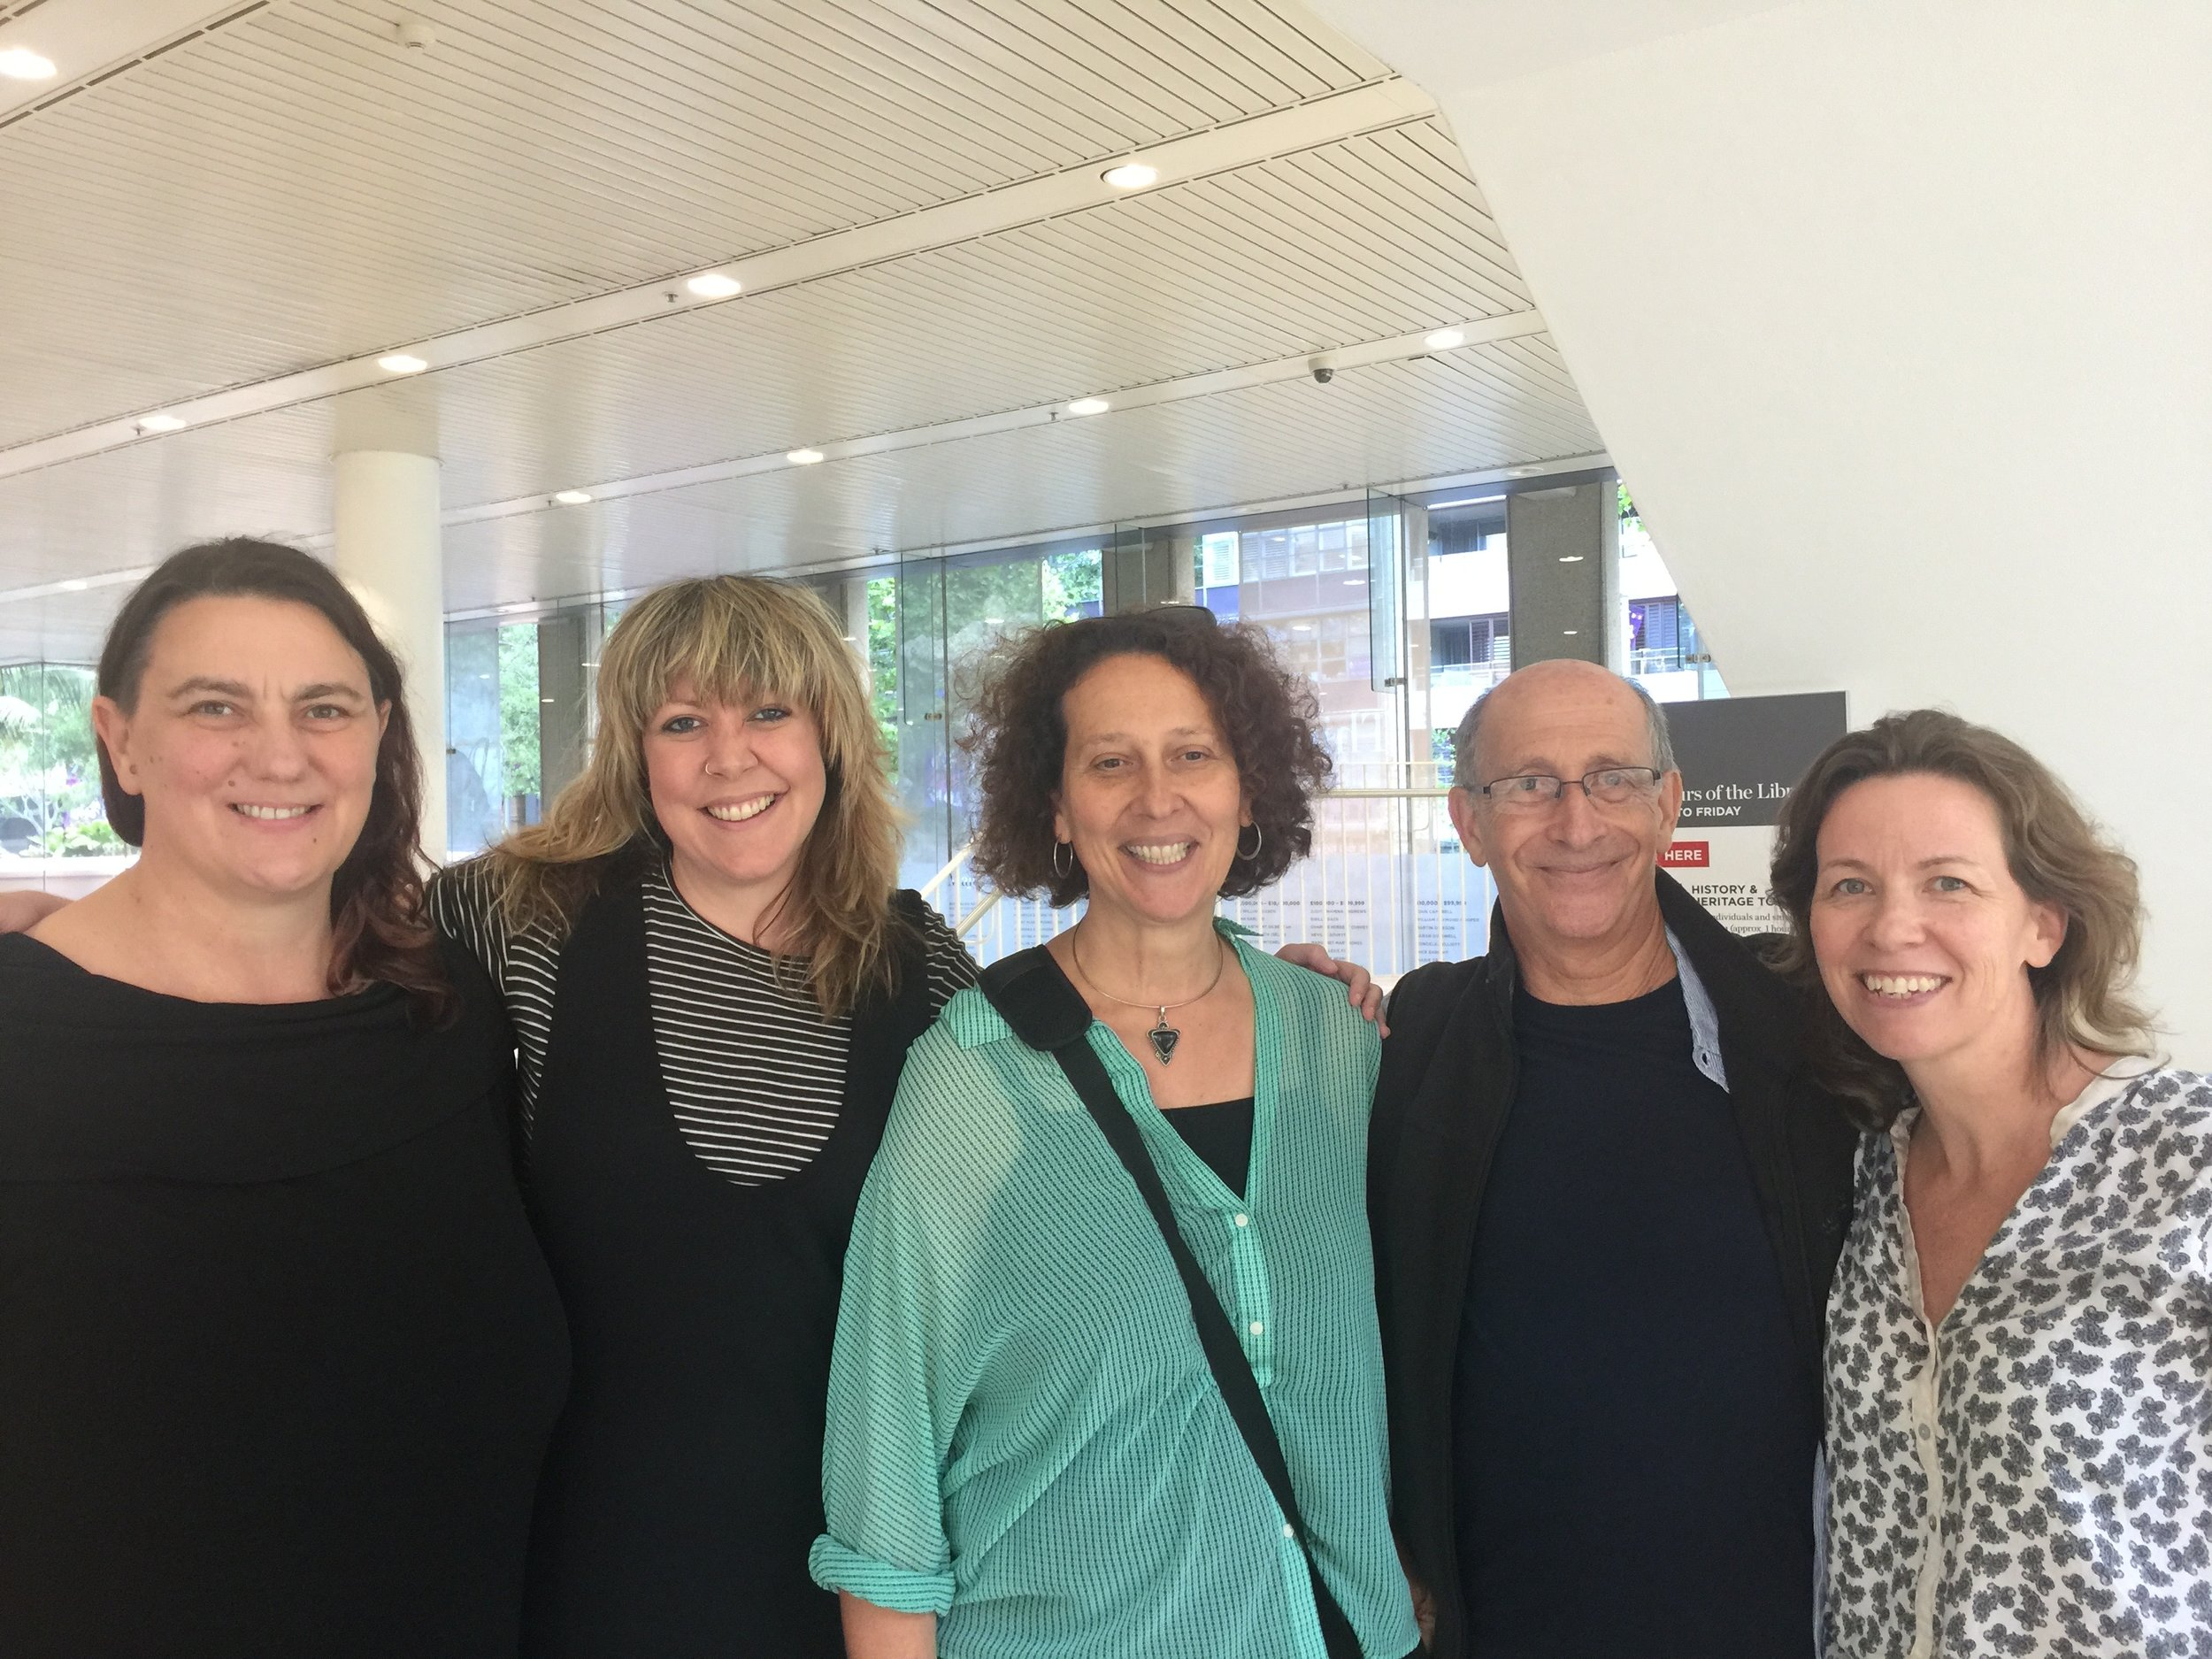 November 30, 2017 - Here are some reflections from one of the first NCCF meetings.The GroundSwell team met Stephen and Marika (from Community Care Northern Beaches) at the NSW State Library to dream up Compassionate Communities and how that might look in Sydney's Northern Beaches.It was a great discussion covering a lot of ground - what is compassionate communities? How will it work in this community? How do we tackle the challenge of harnessing community interest without being too prescriptive as to what the project will look like?The Northern Beaches GroundBreakers are important to the project as it will be a bit of a testing ground for us in terms of initial events and resources we develop. They will be having their first Community meeting to launch this work on Thursday the 12th of April at Dee Why RSL.